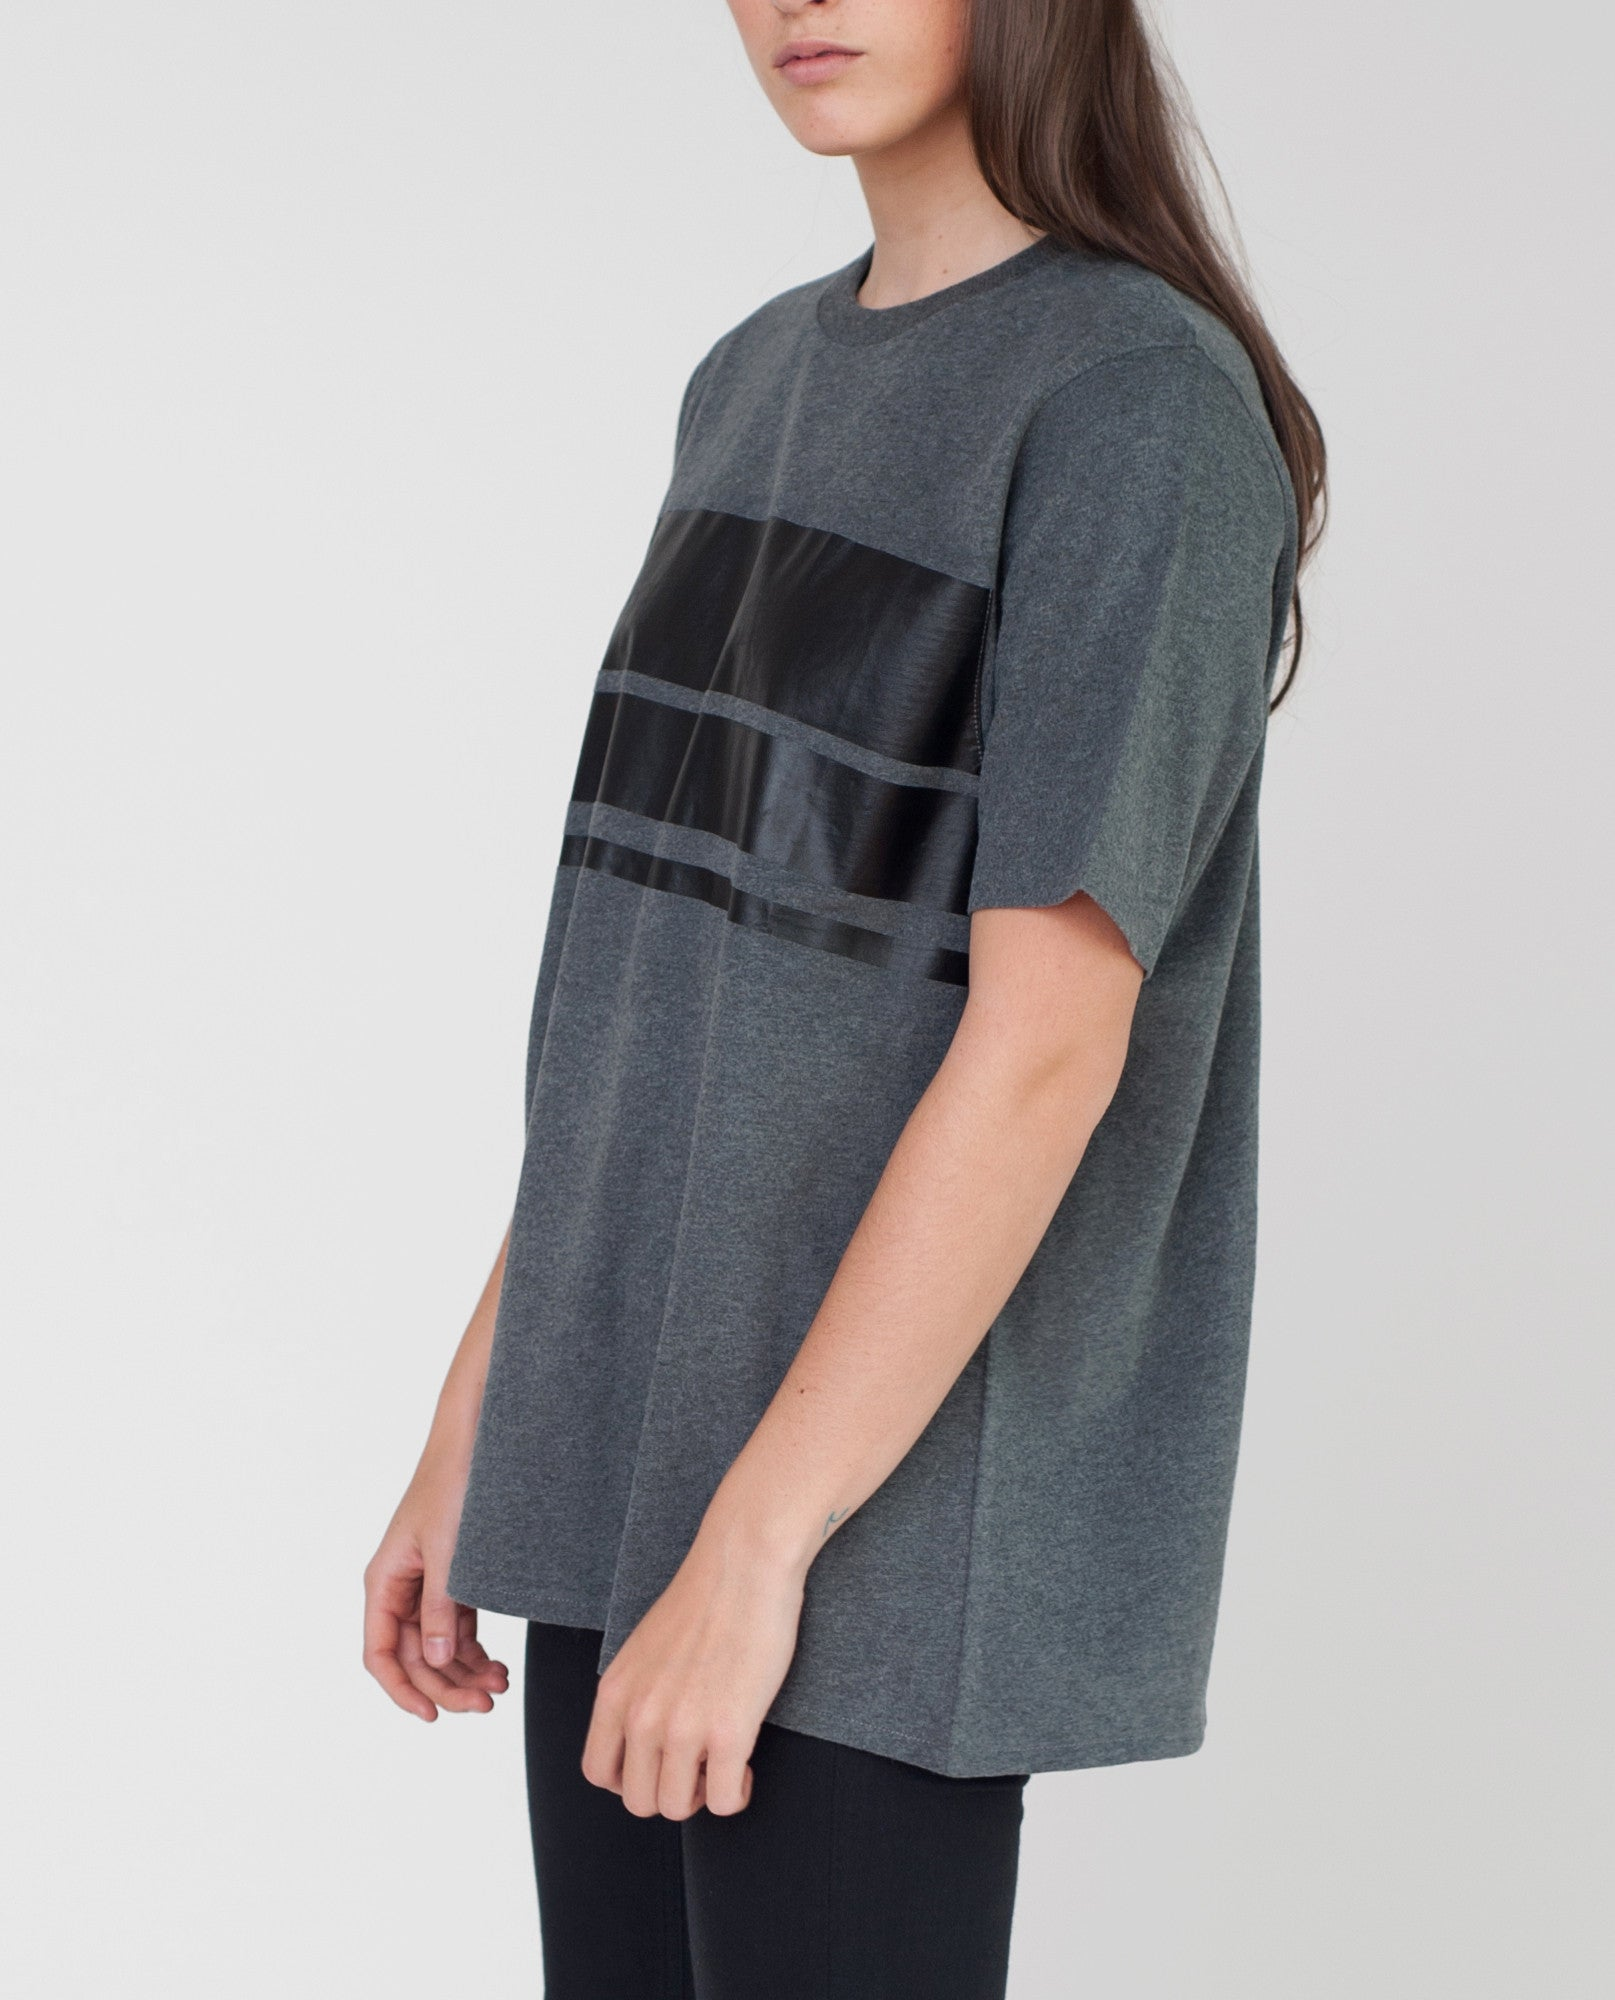 OLIVE Organic Cotton Print Tshirt In Dark Grey